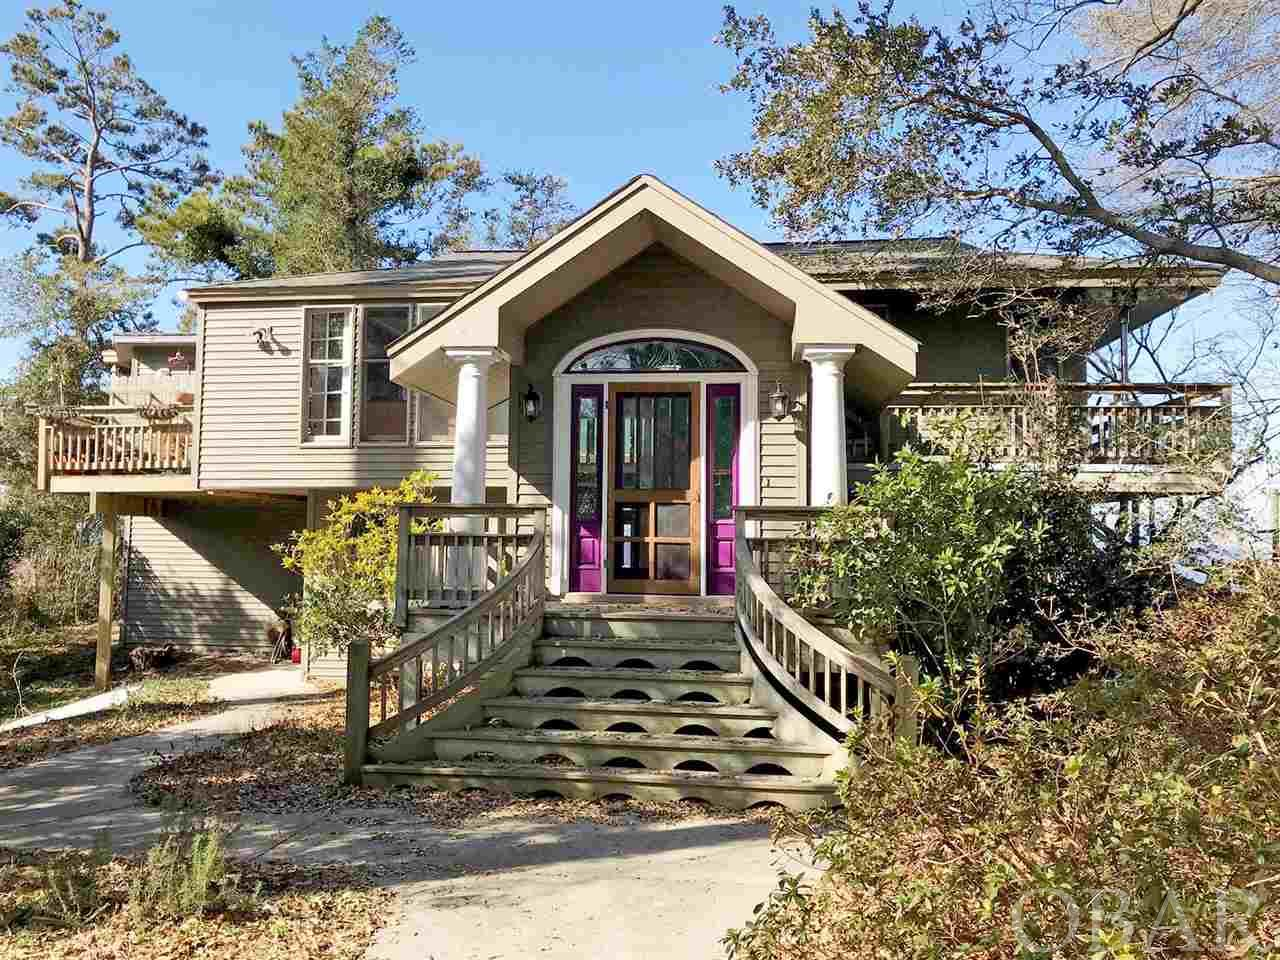 273 Dogwood Trail,Southern Shores,NC 27949,4 Bedrooms Bedrooms,4 BathroomsBathrooms,Residential,Dogwood Trail,99140